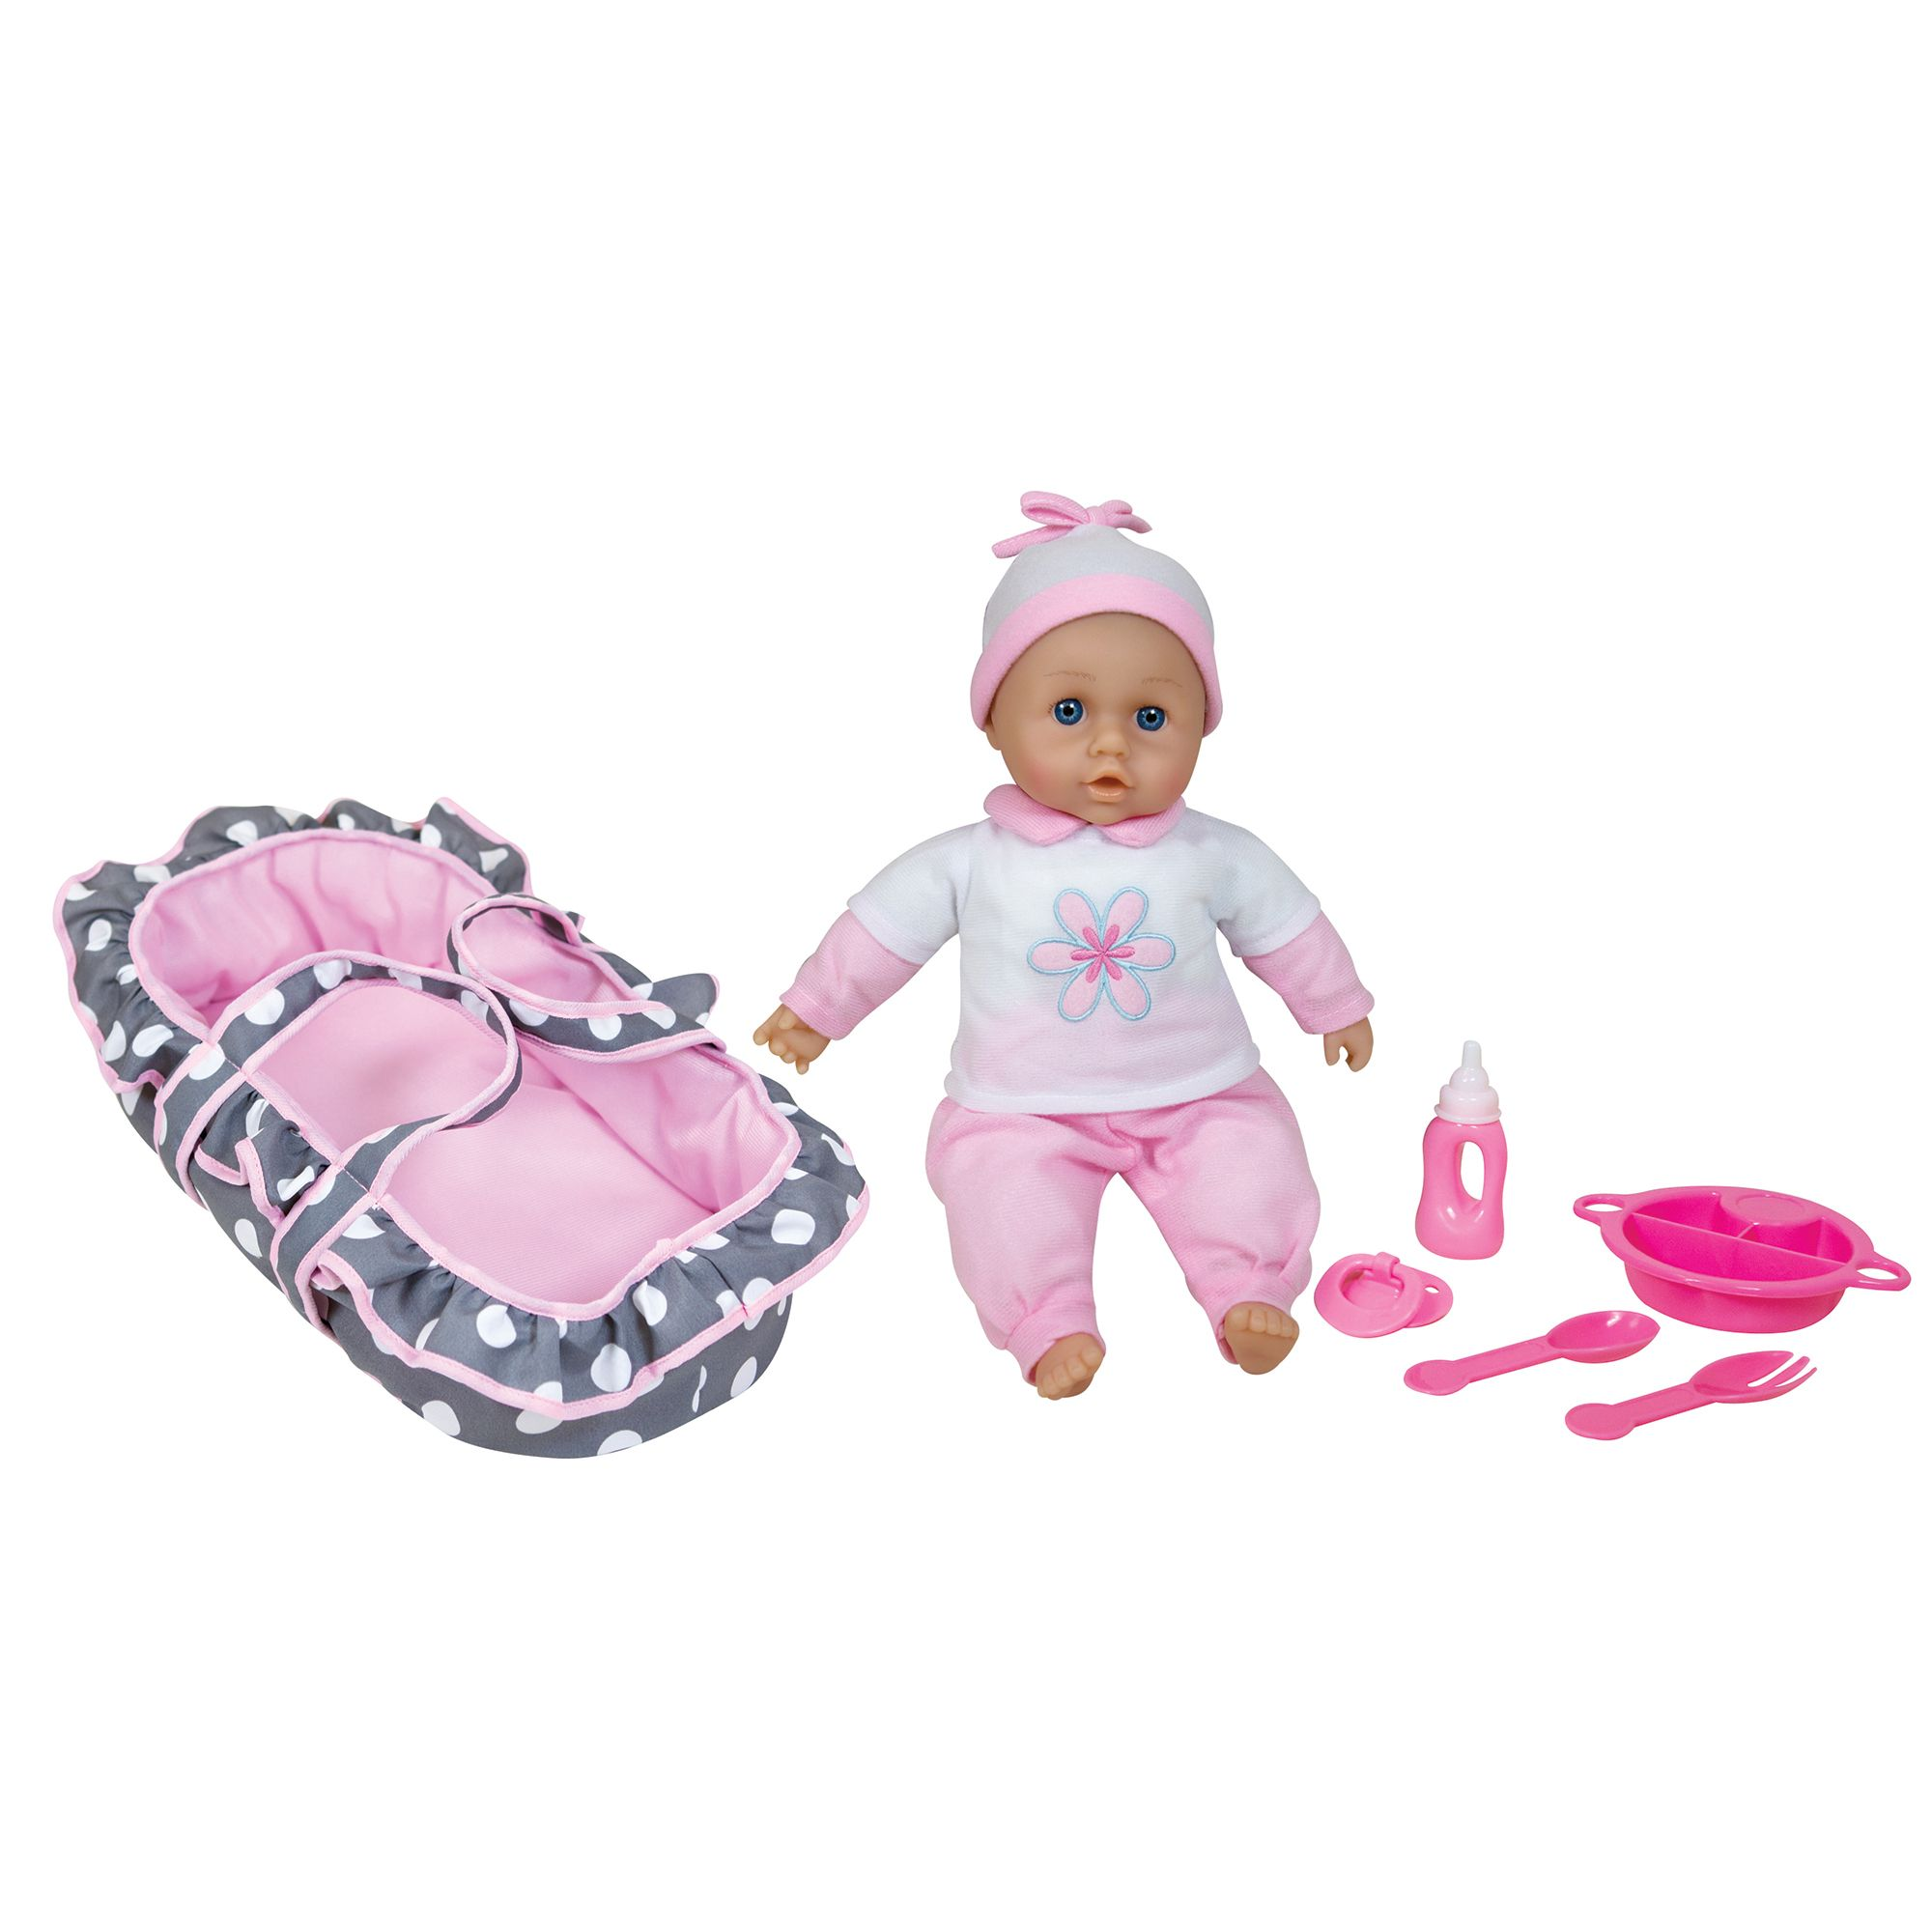 Image of Baby Ellie & Friends Baby & Carry Cot Set